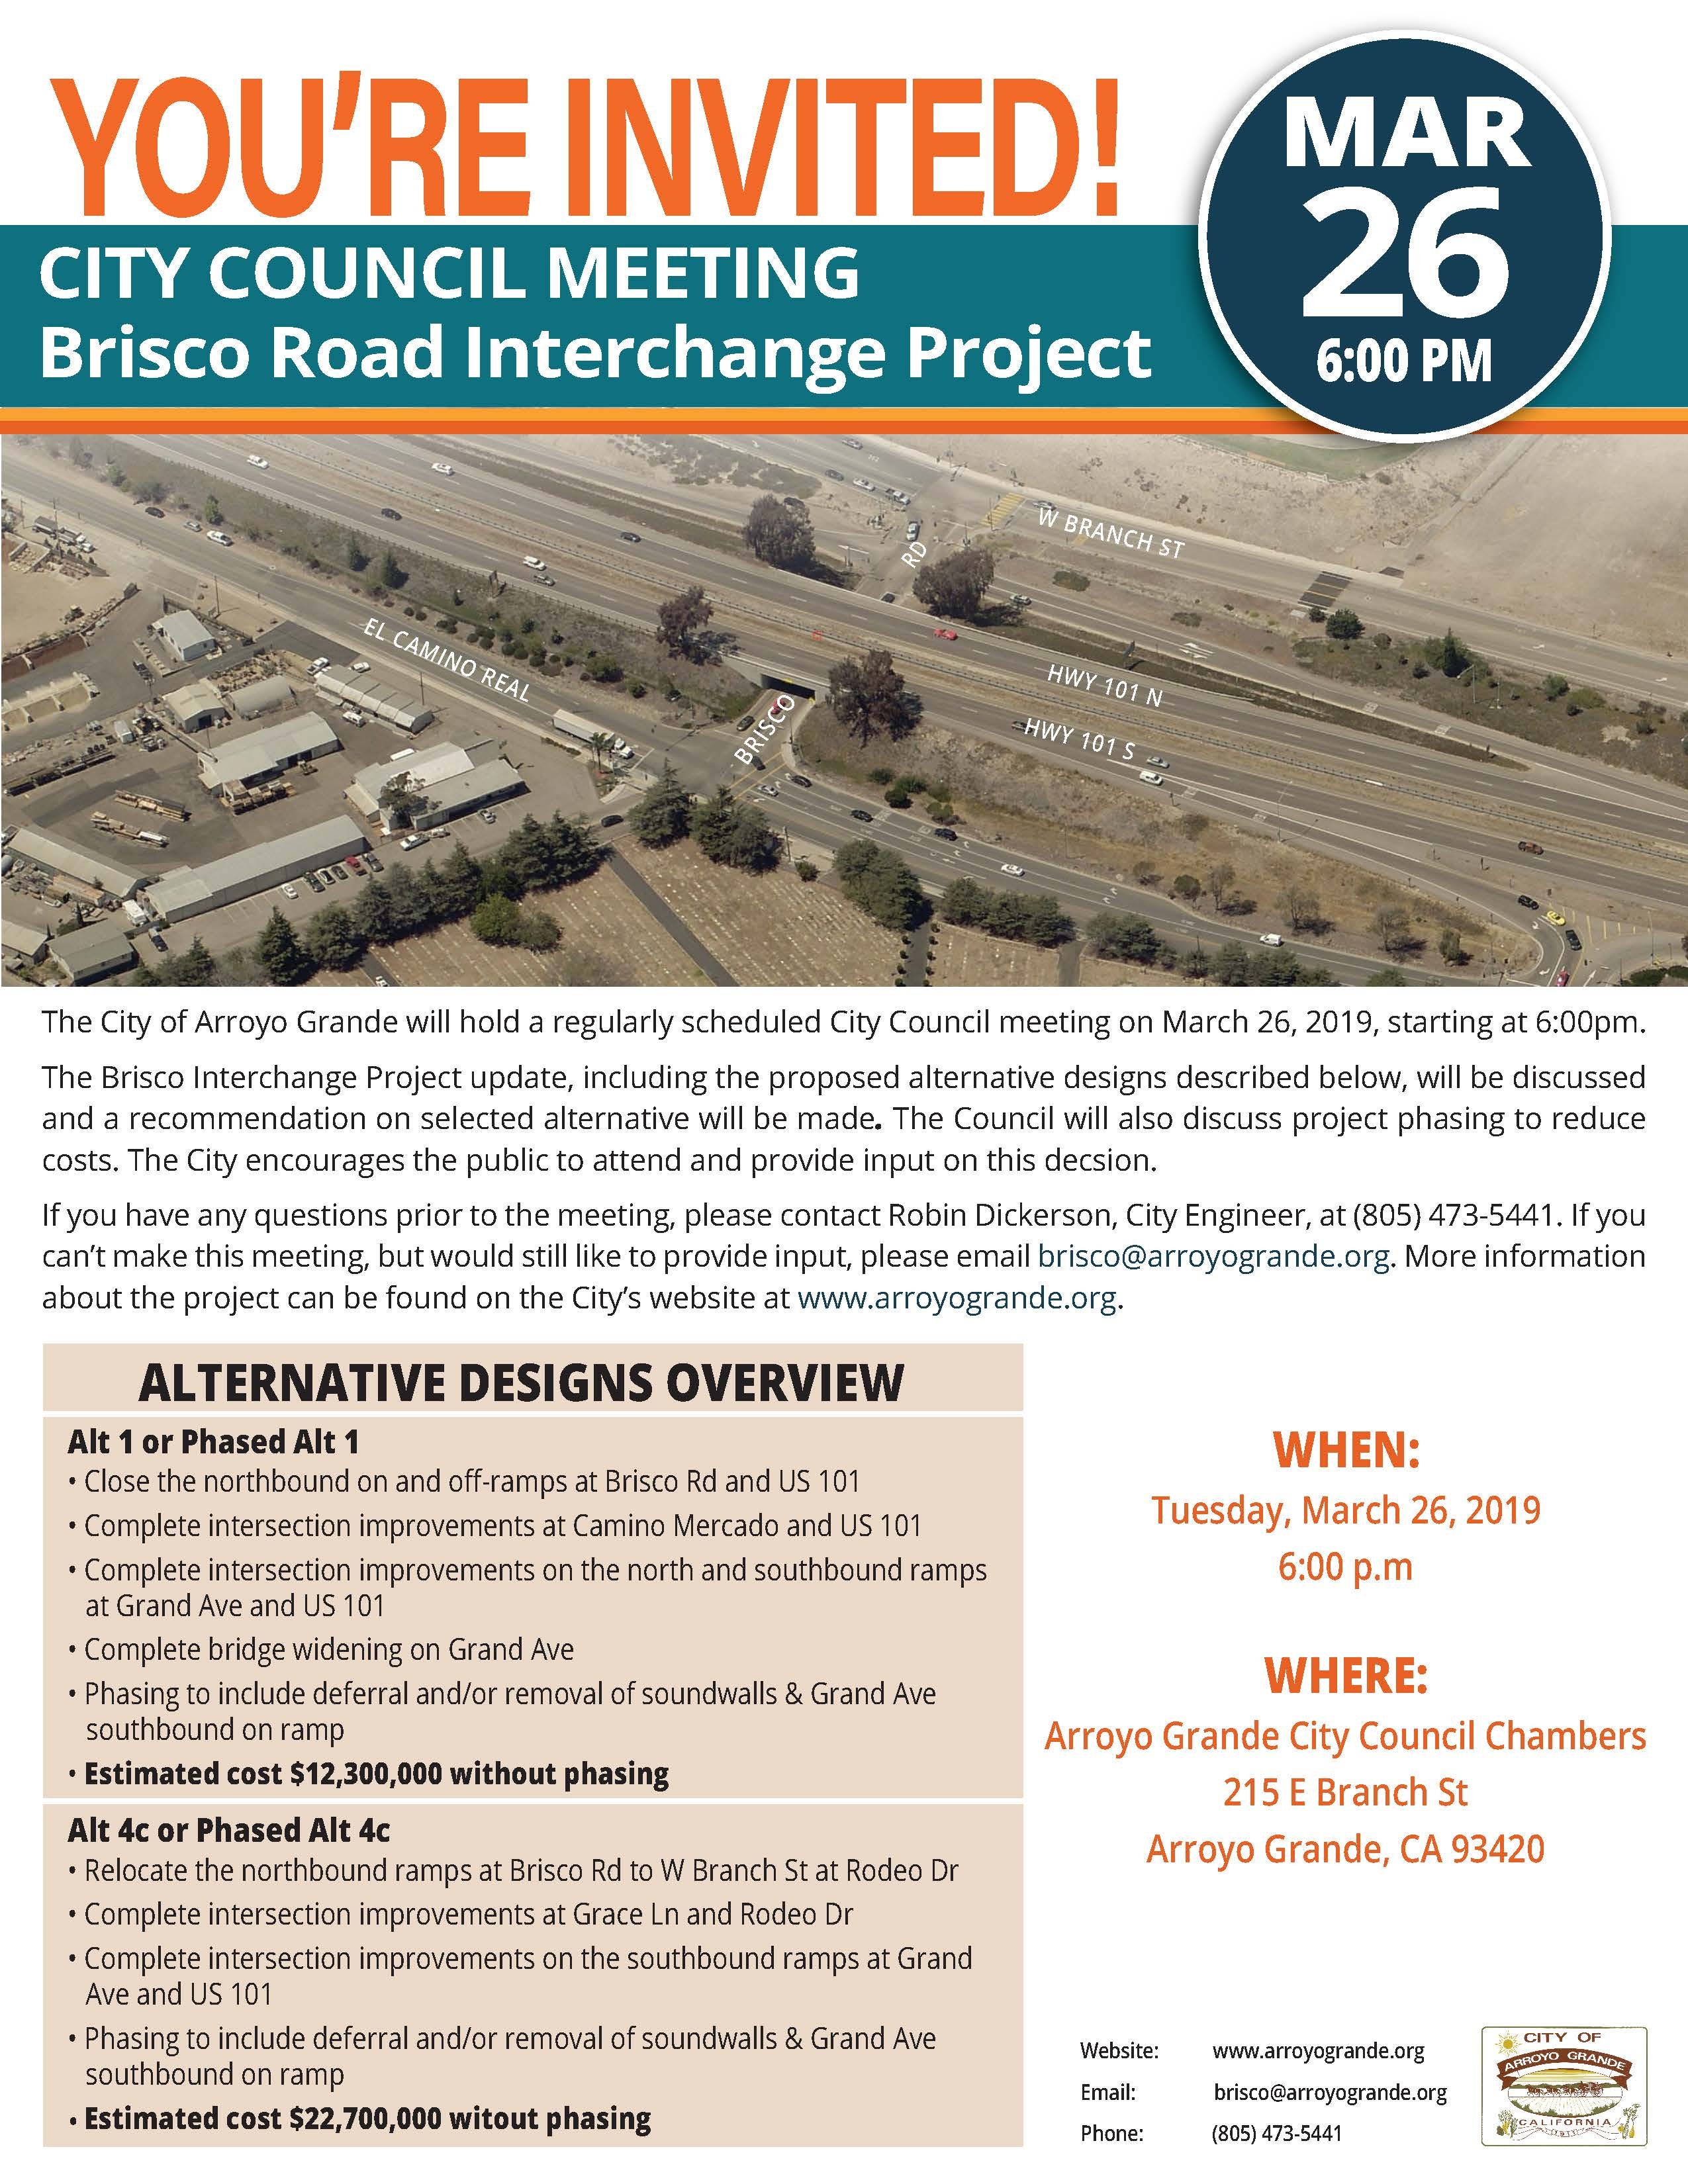 Brisco-Halcyon Road Interchange Modification Project Council Meeting Flyer